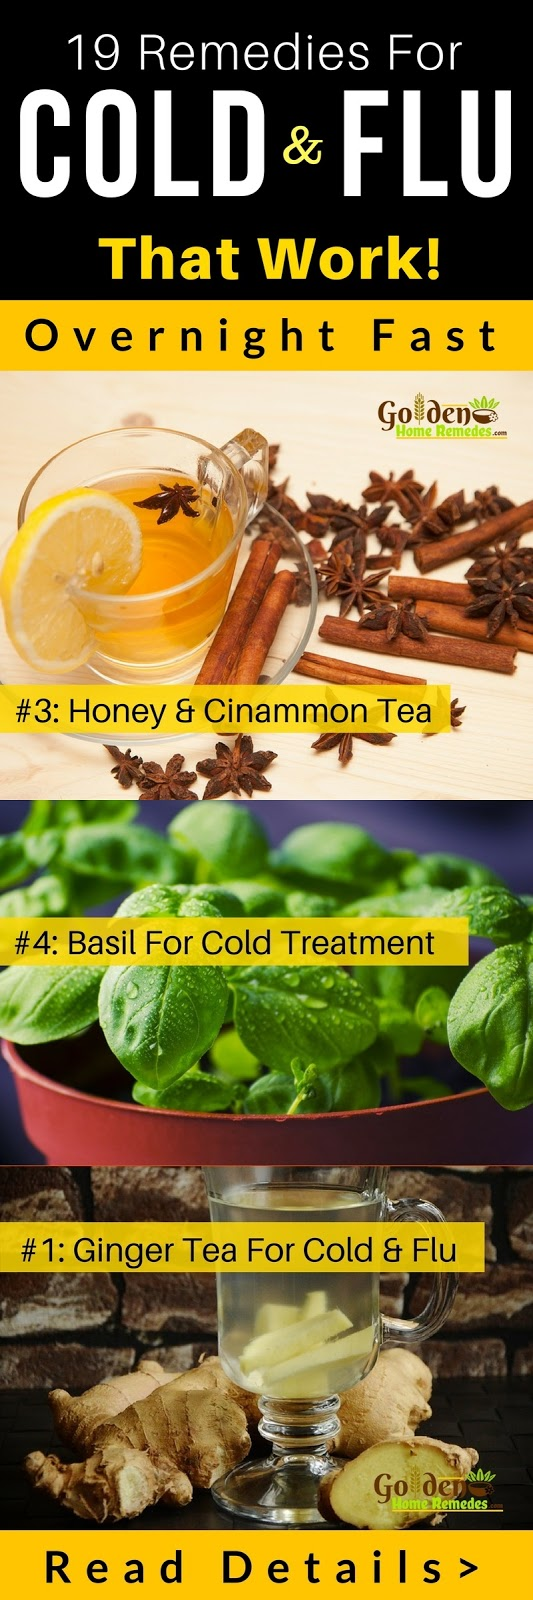 Cold and Flu, How To Get Rid Of Cold, Home Remedies For Cold, Common Cold, Cold Treatment, Cold Home Remedies, How To Treat Cold, How To Cure Cold, Cold Remedies, Remedies For Cold, Cure Cold, Treatment For Cold, Best Cold Treatment, Cold Relief, How To Get Relief From Cold, Relief From Cold, How To Get Rid Of Cold Fast,